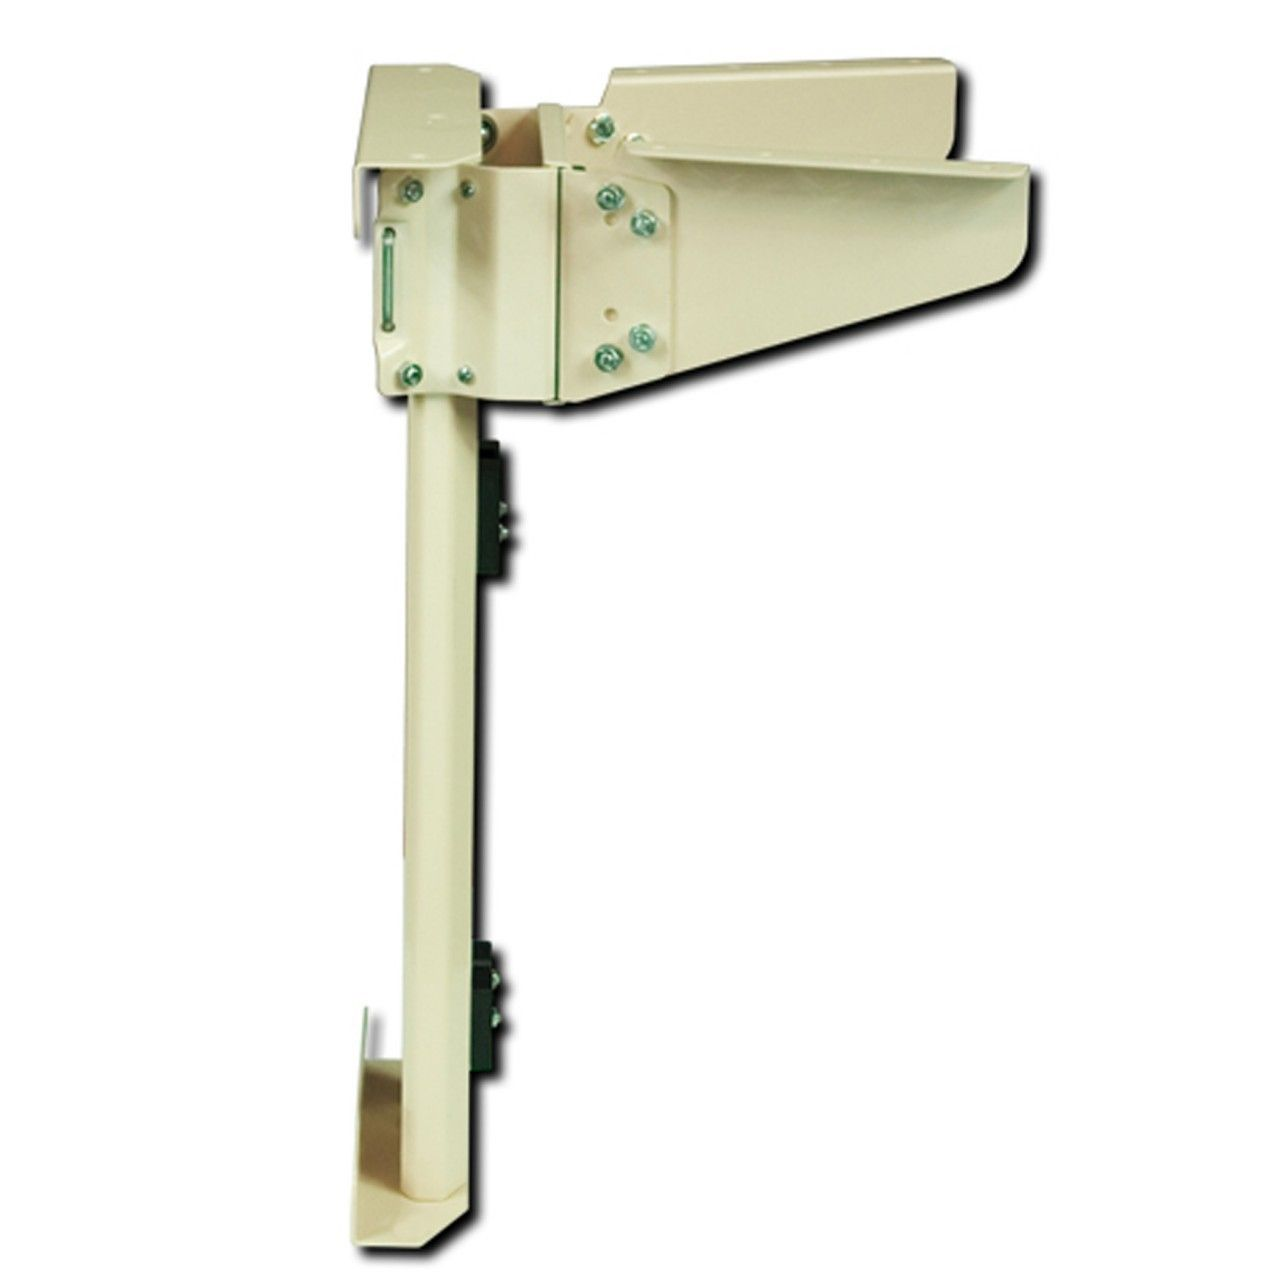 Horn of America Sewing Machine Cabinet Lift | Horn, Janome and ...